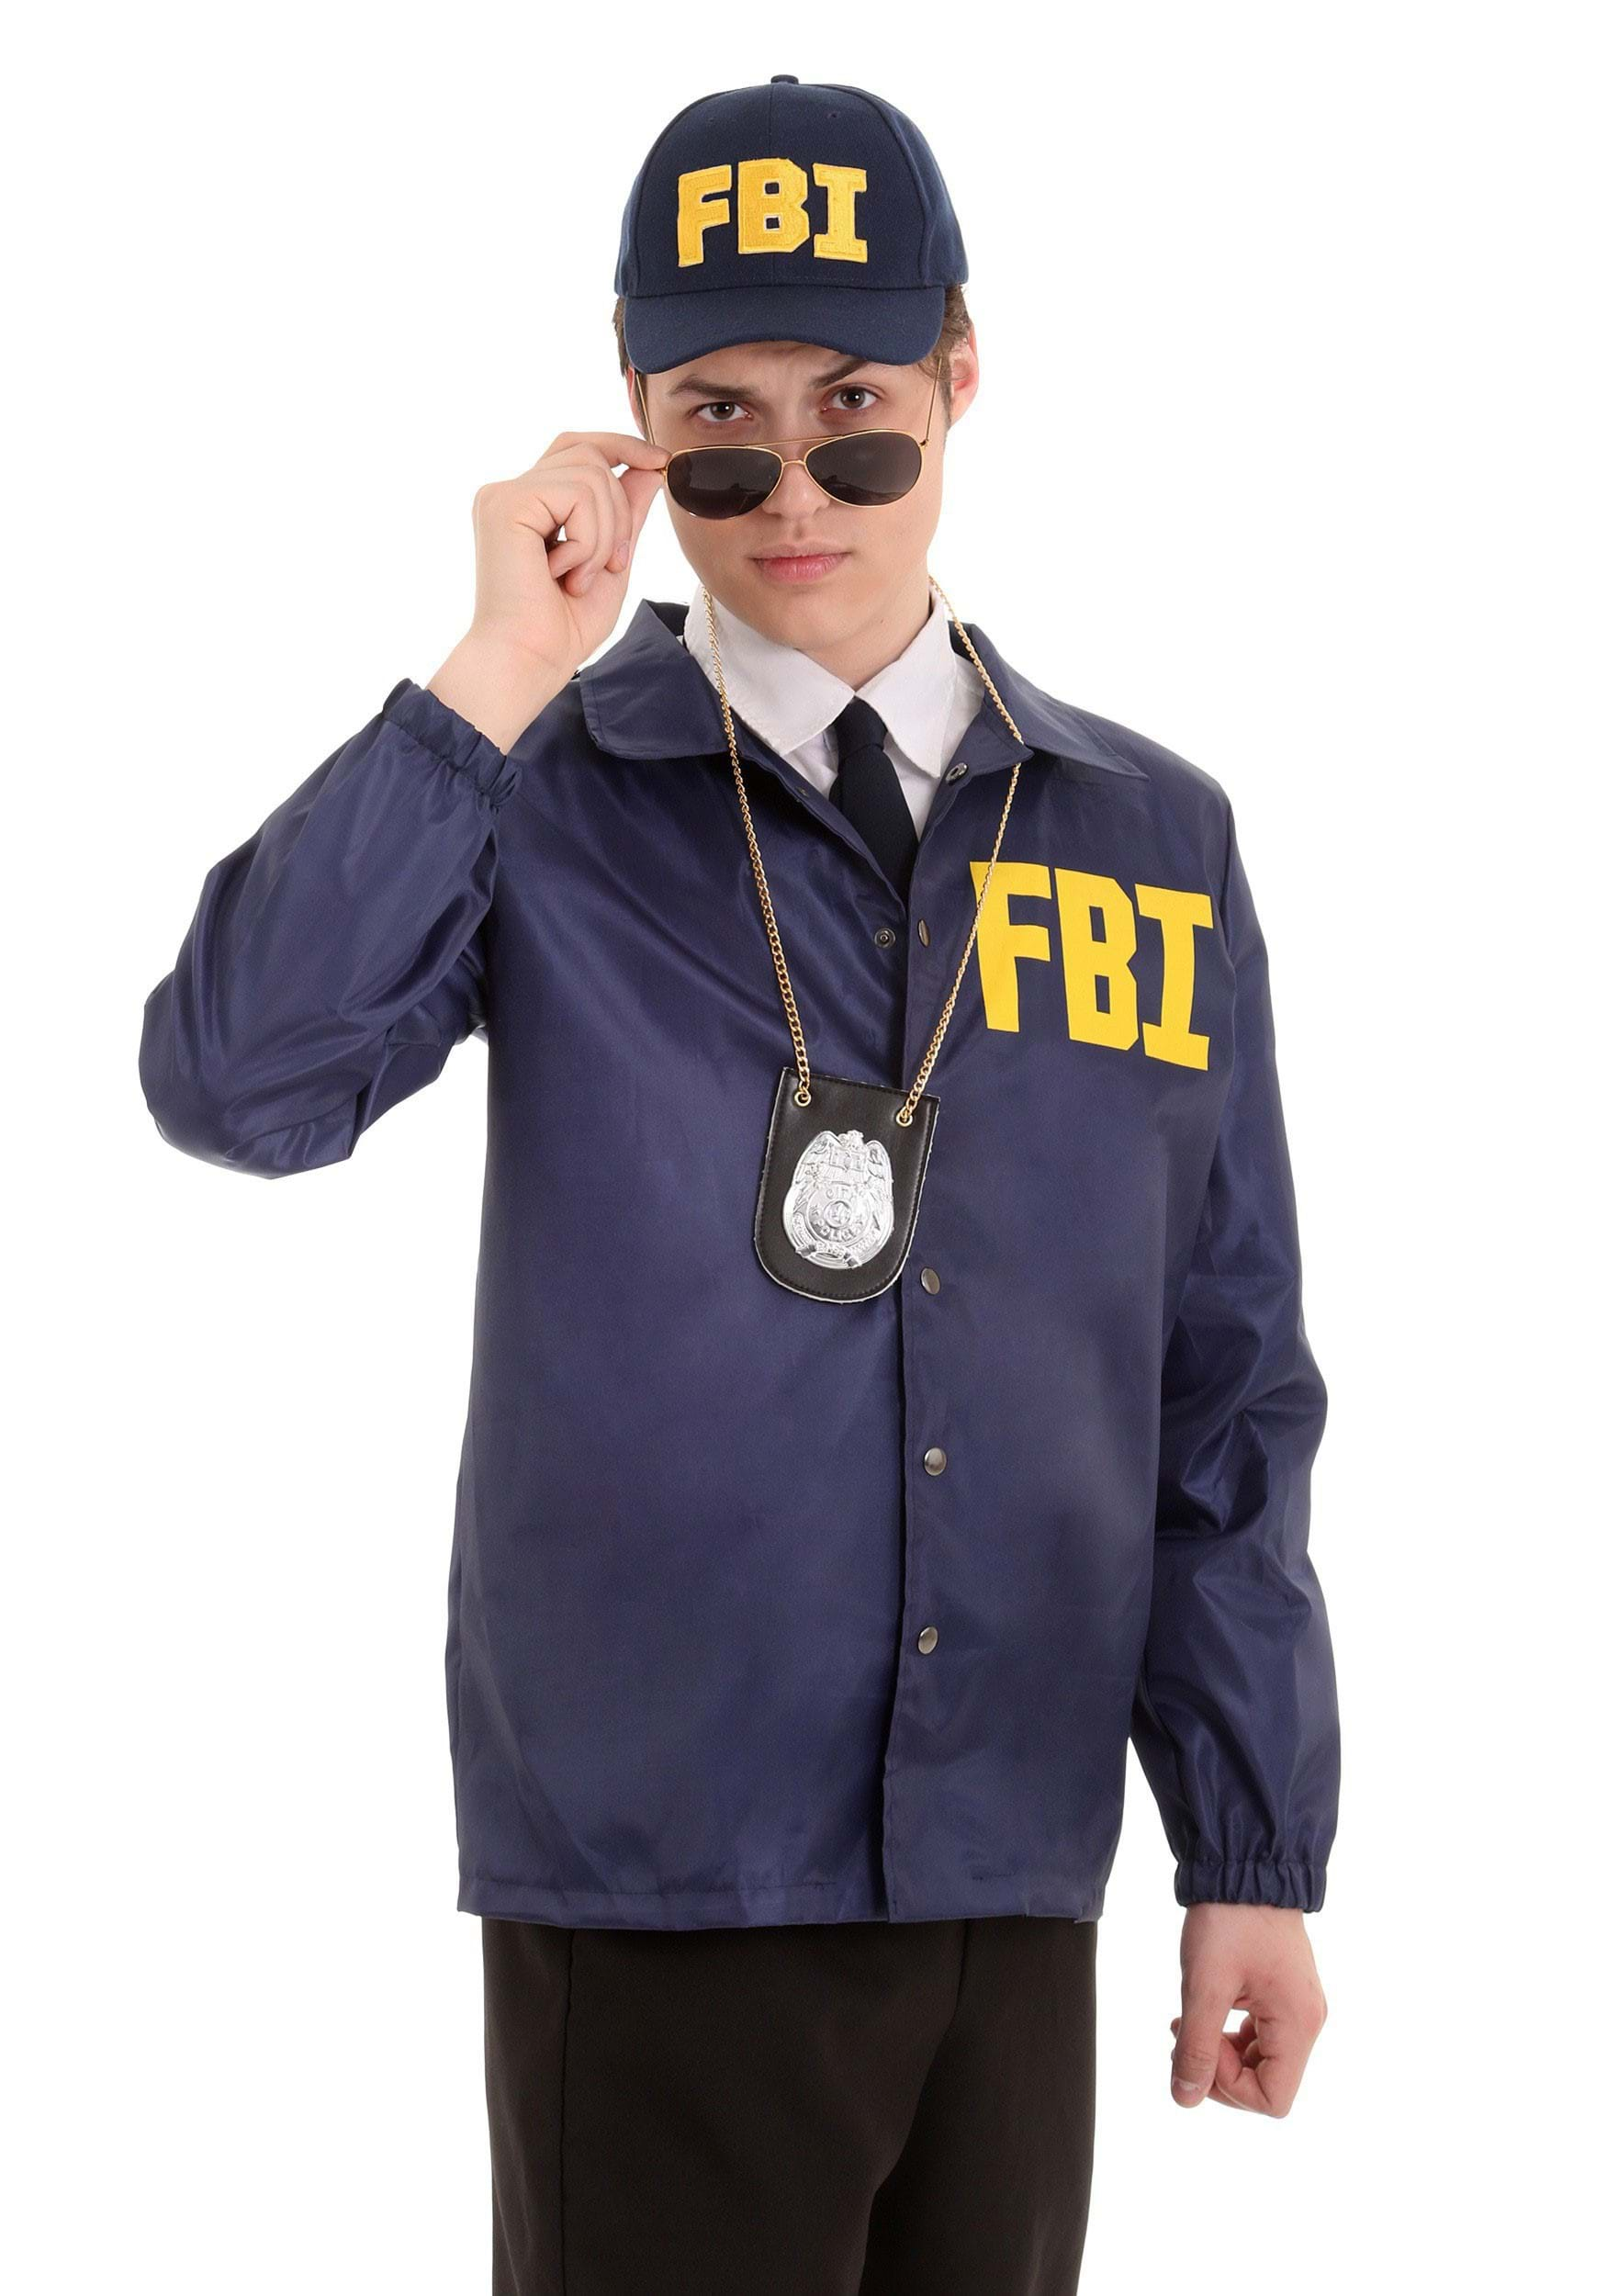 sc 1 st  Halloween Costumes : fbi costume for men  - Germanpascual.Com